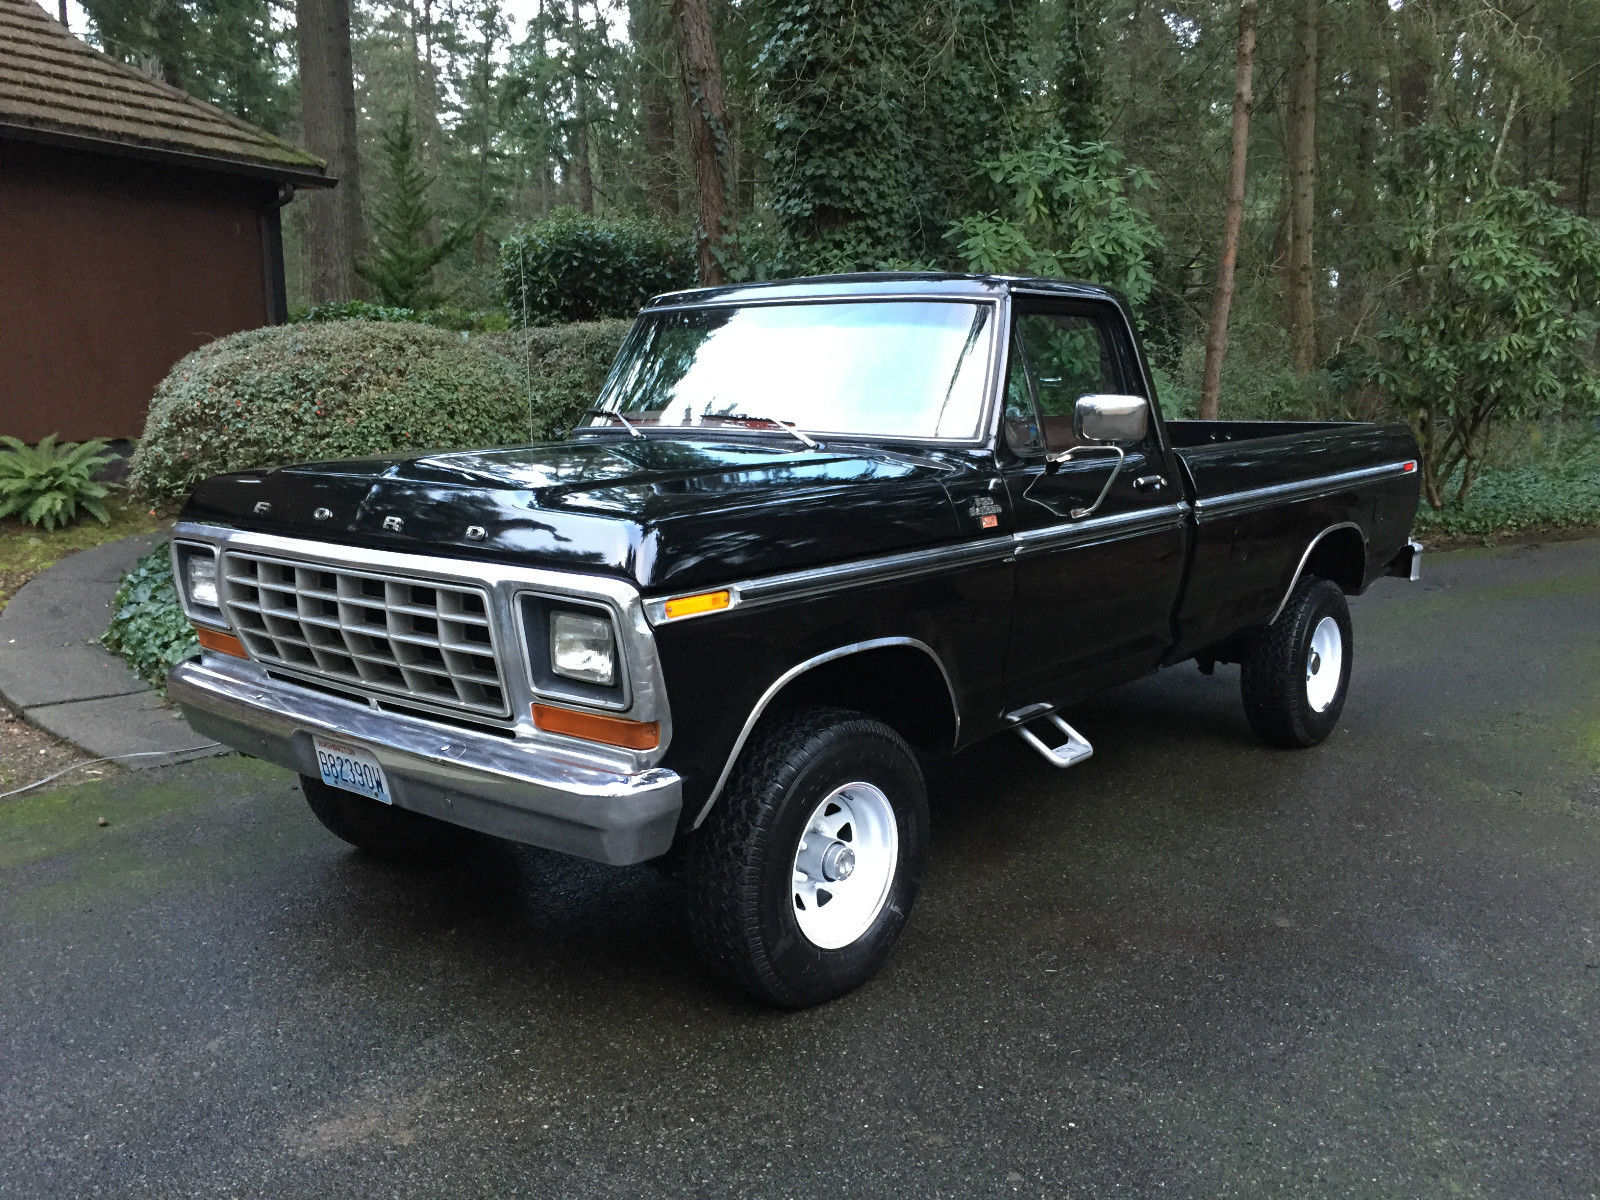 1978 ford f150 ranger xlt 4x4 amazing original condition 100 rust free for sale in clackamas. Black Bedroom Furniture Sets. Home Design Ideas